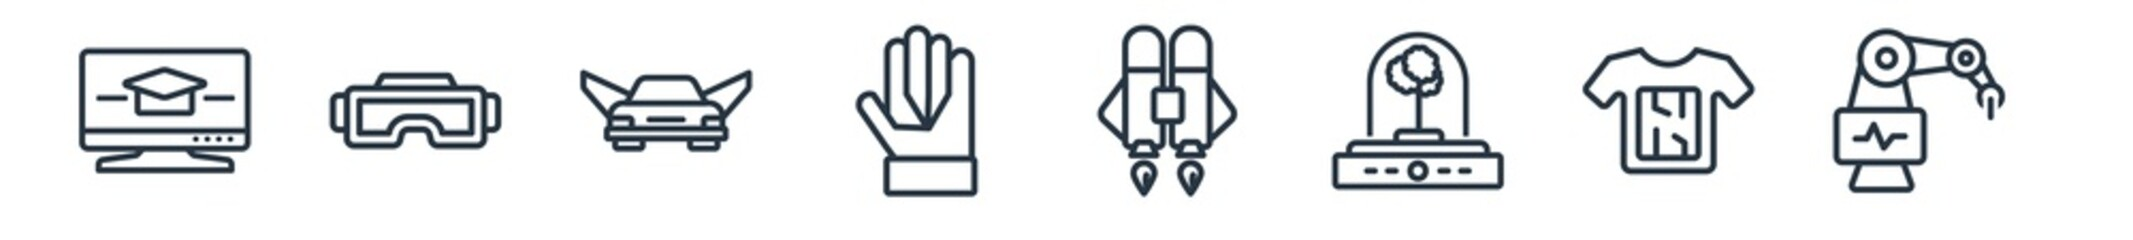 Obraz linear set of future technology outline icons. line vector icons such as online learning, vr glasses, flying car, wi gloves, jetpack, surgery vector illustration. - fototapety do salonu